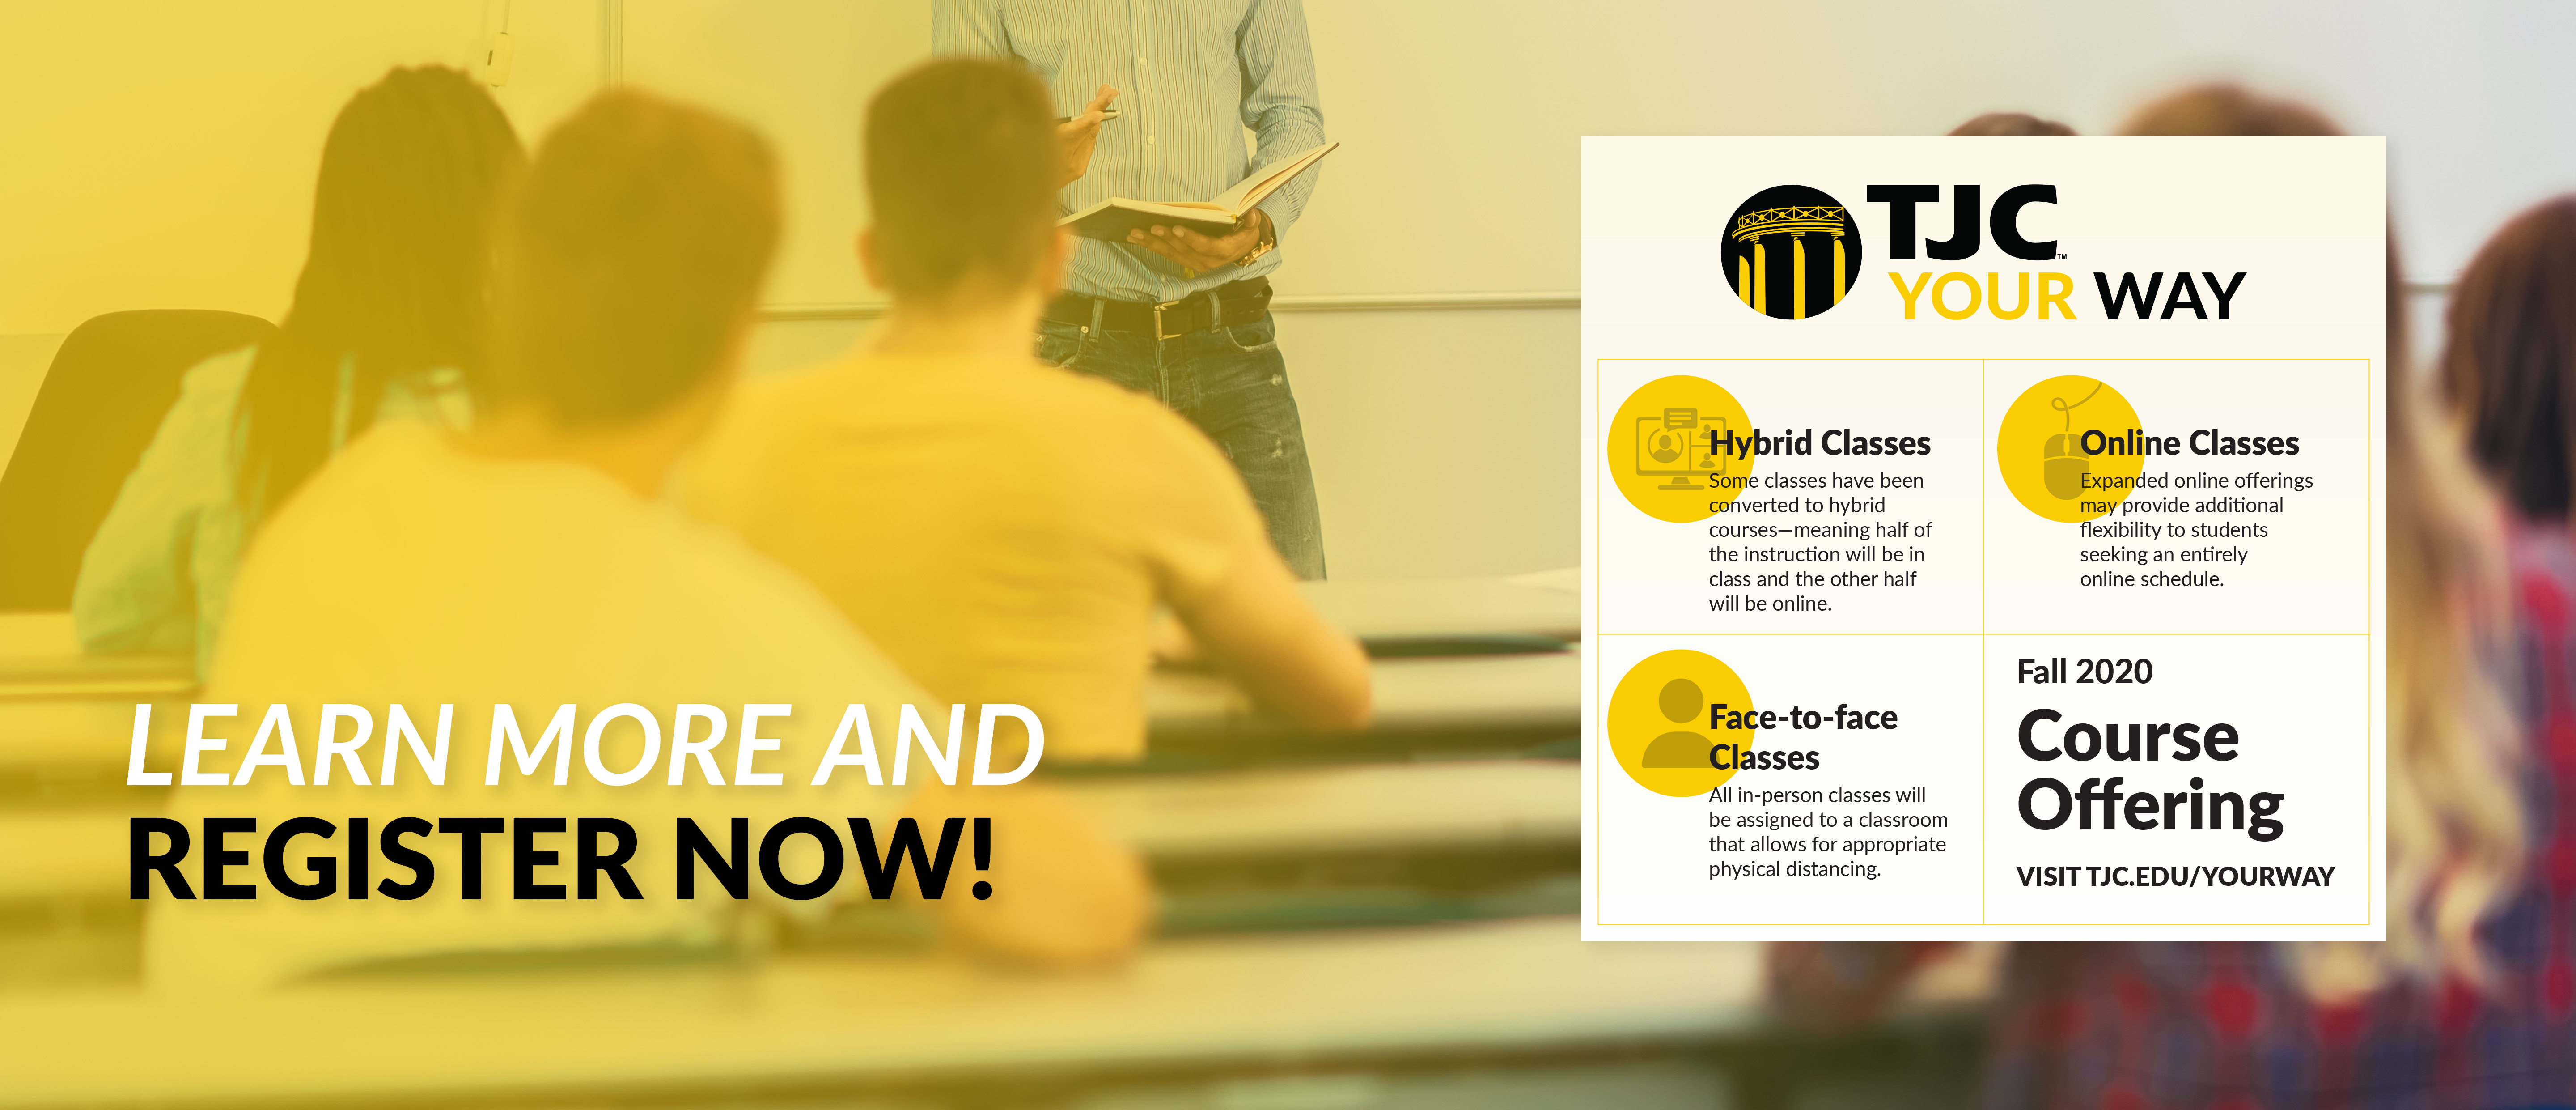 Tjc your way! Learn more and Register now!